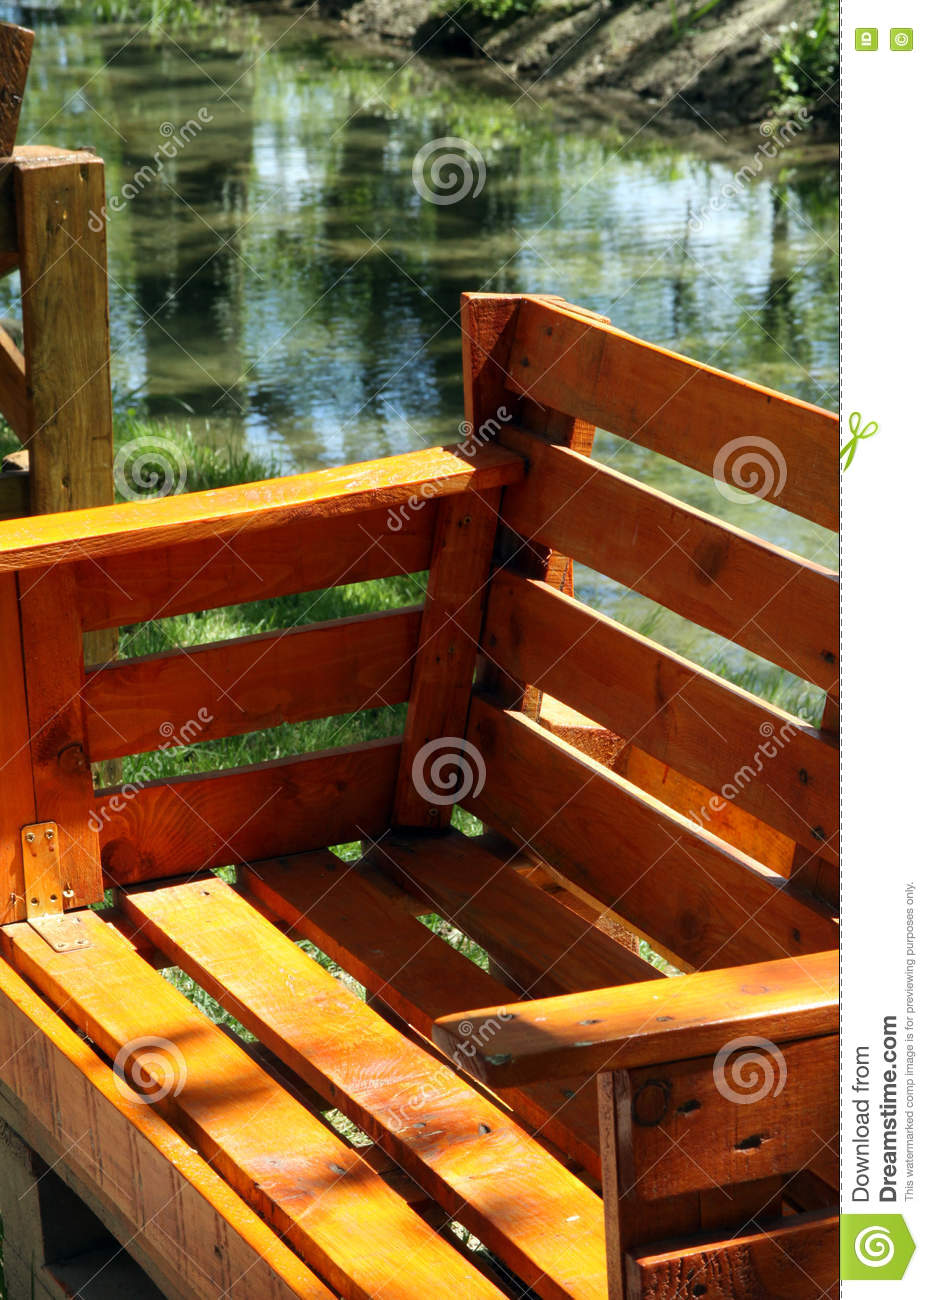 Wondrous Garden Bench For Sitting Made From Old Wooden Pallets Stock Machost Co Dining Chair Design Ideas Machostcouk